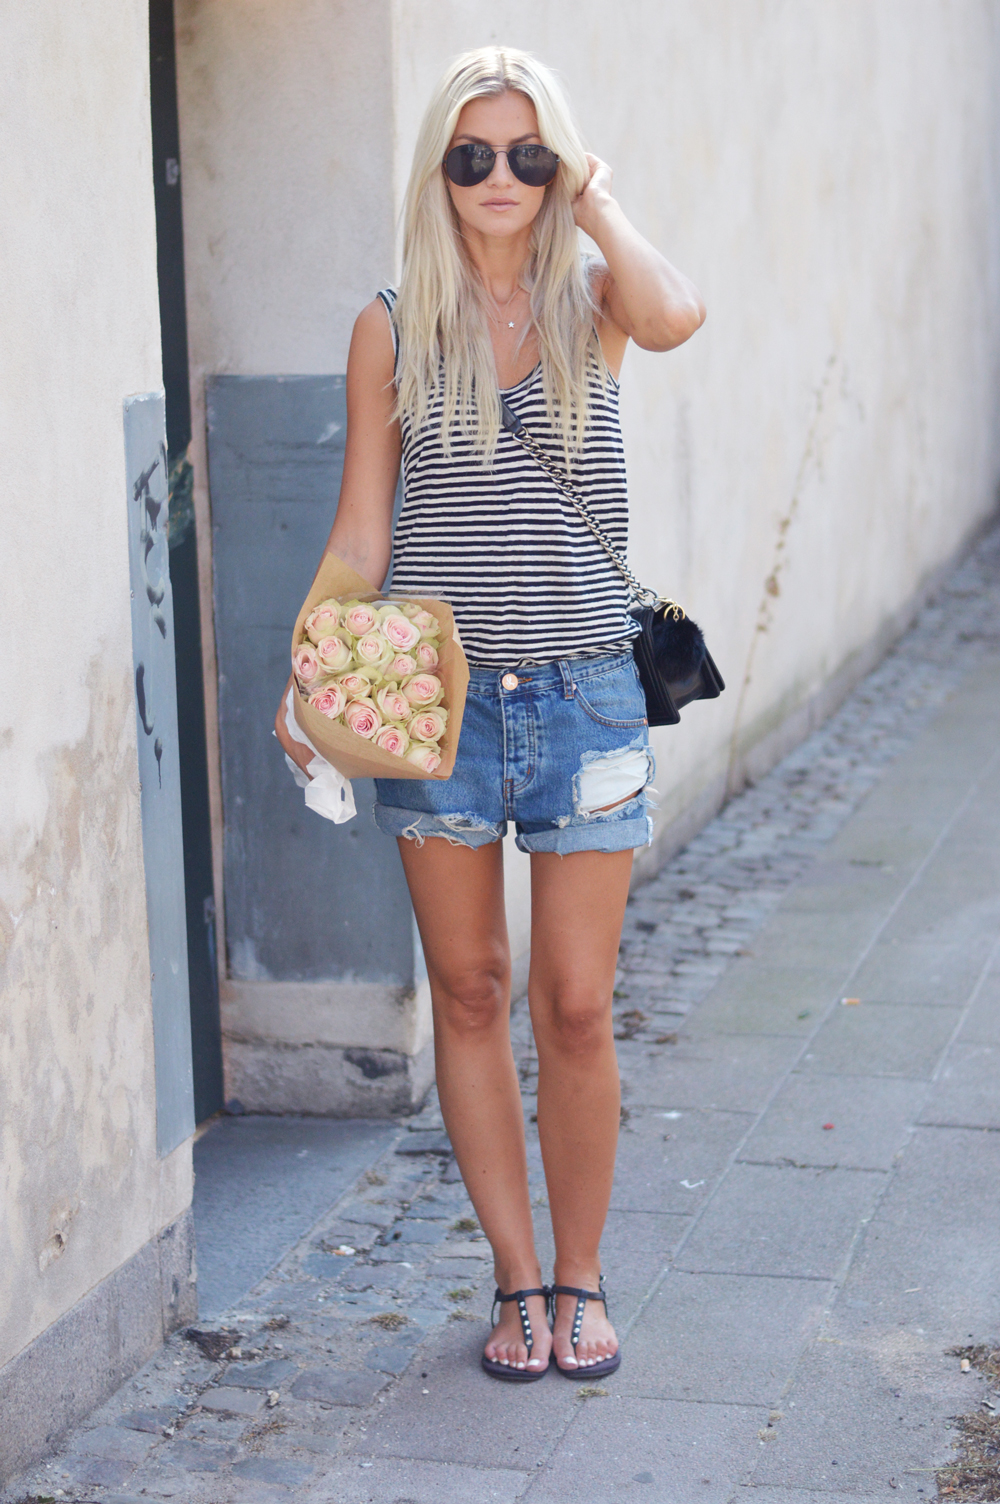 stockholm-fashonweek-outfit-denim-blue-striped-chanel